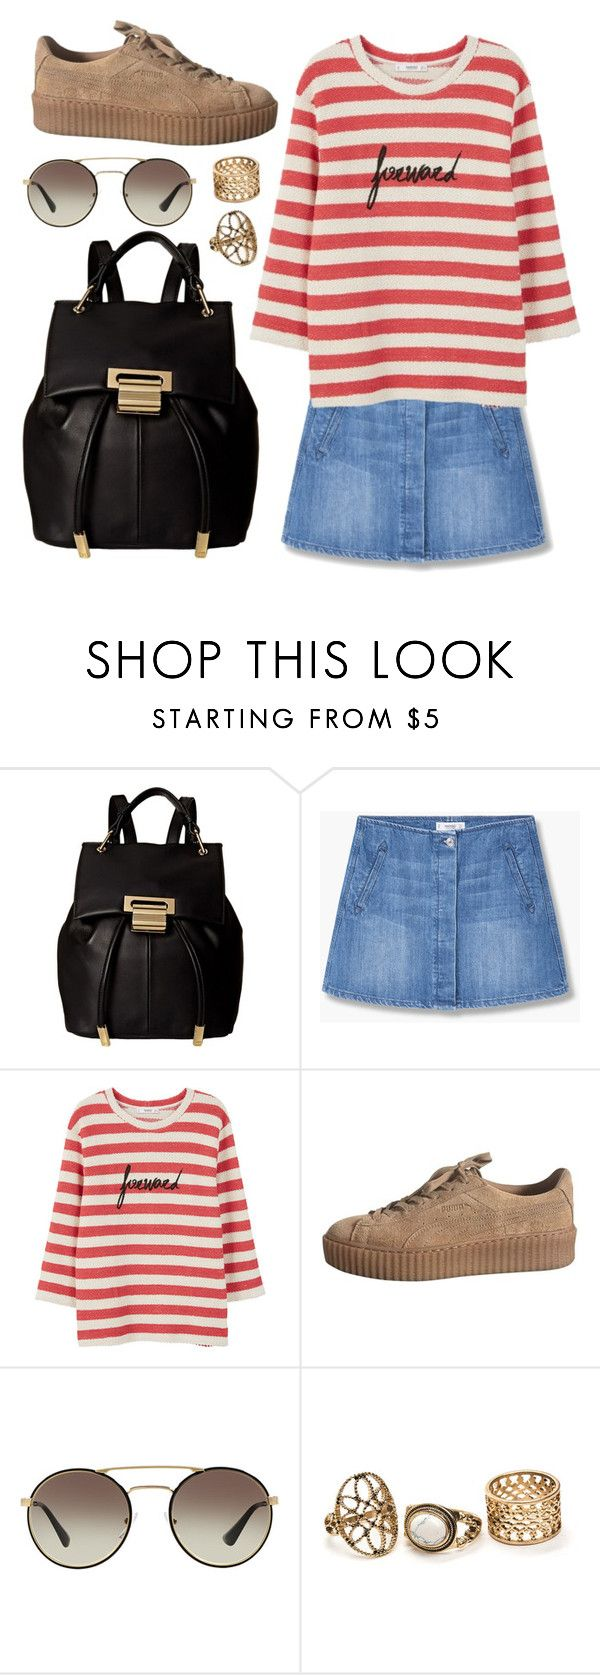 """Untitled #629"" by cece-cherry ❤ liked on Polyvore featuring Ivanka Trump, MANGO, Prada, mango, summeroutfits, skirtoutfit and mangooutfit"